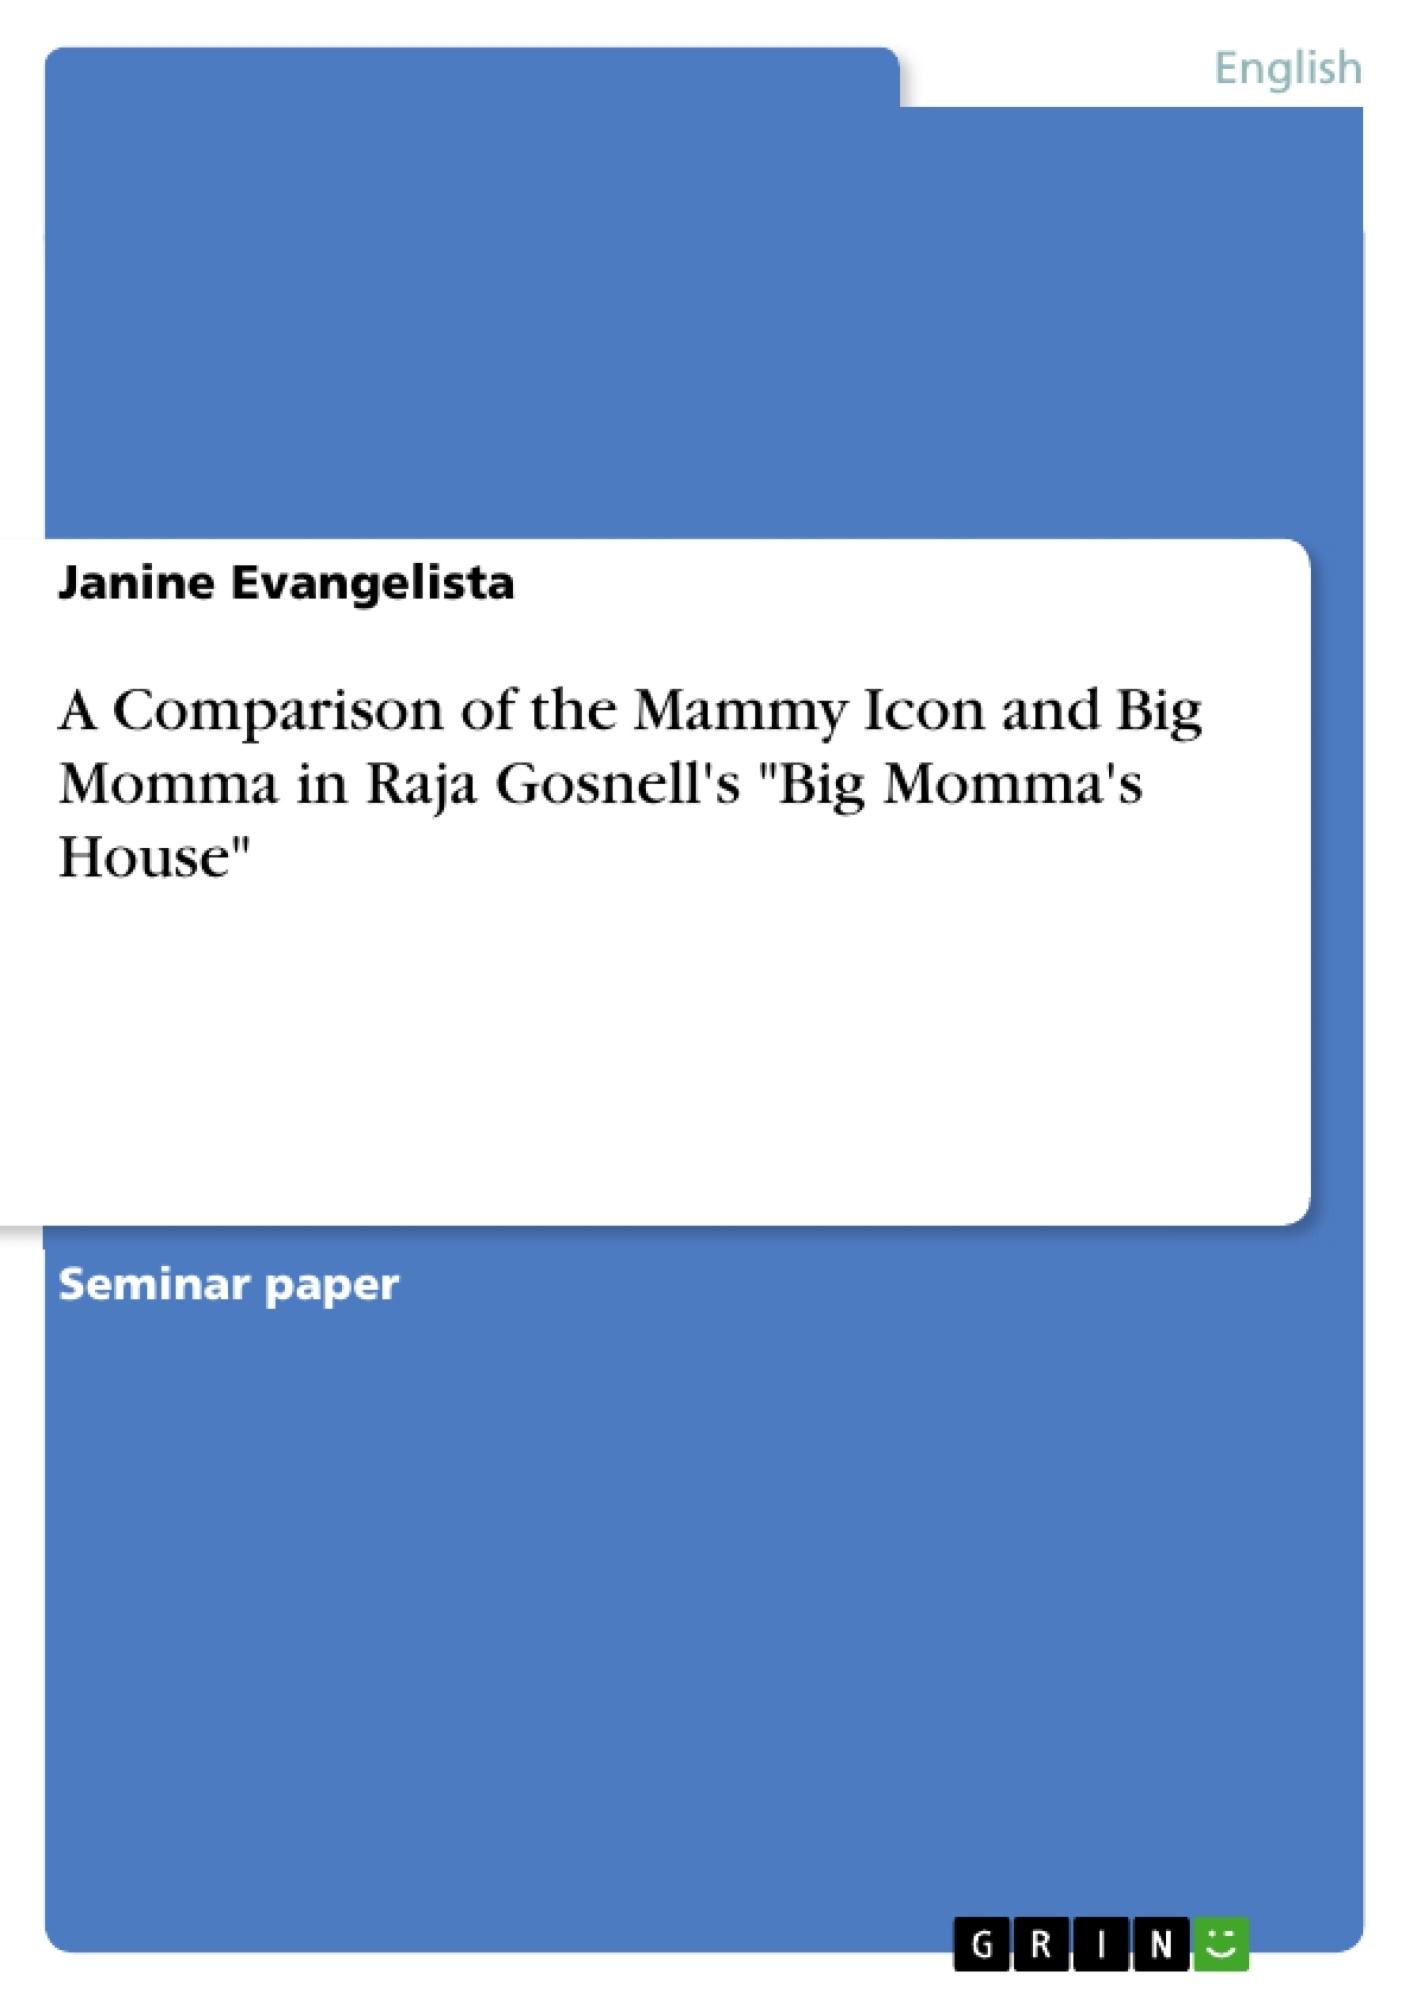 """Title: A Comparison of the Mammy Icon and Big Momma in Raja Gosnell's """"Big Momma's House"""""""